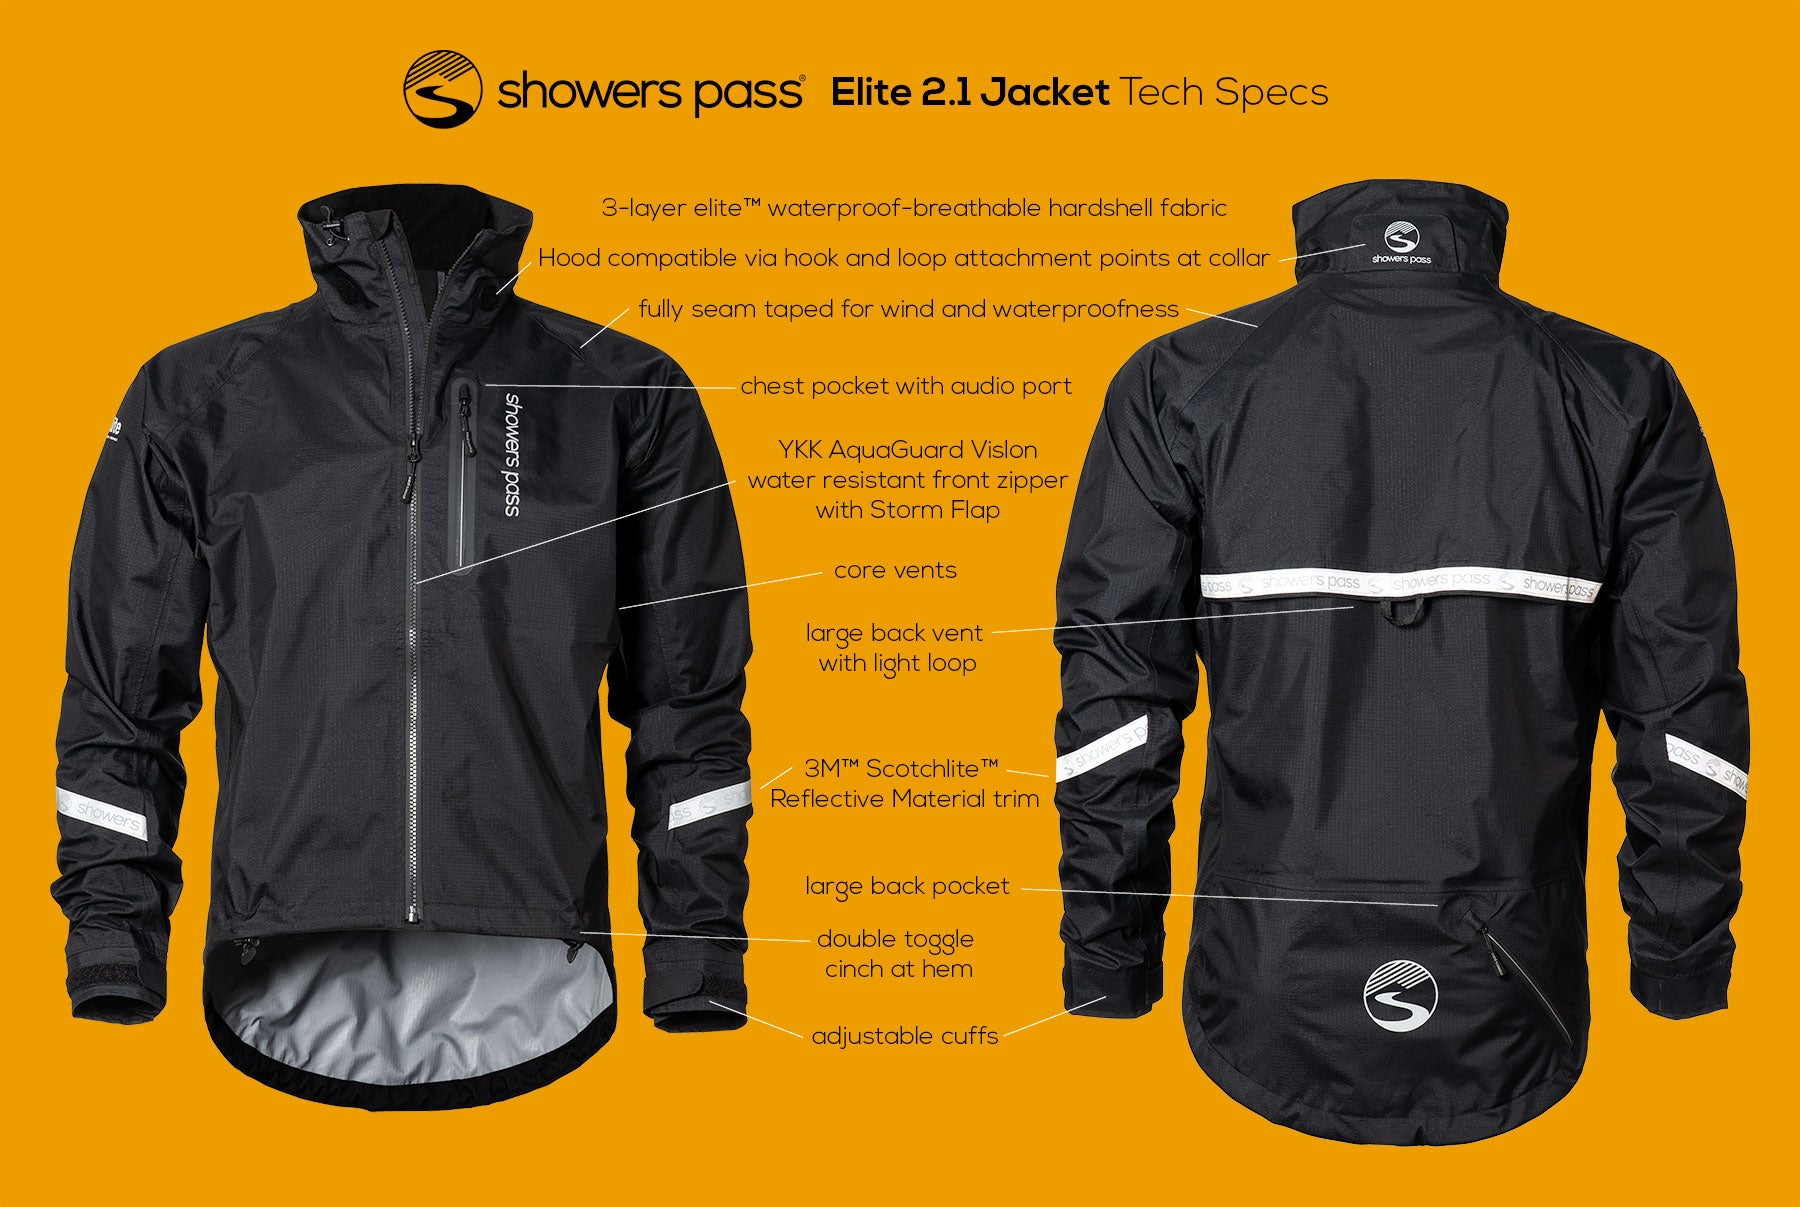 Showers Pass Elite 2.1 Black Waterproof Cycling Jacket tech specs